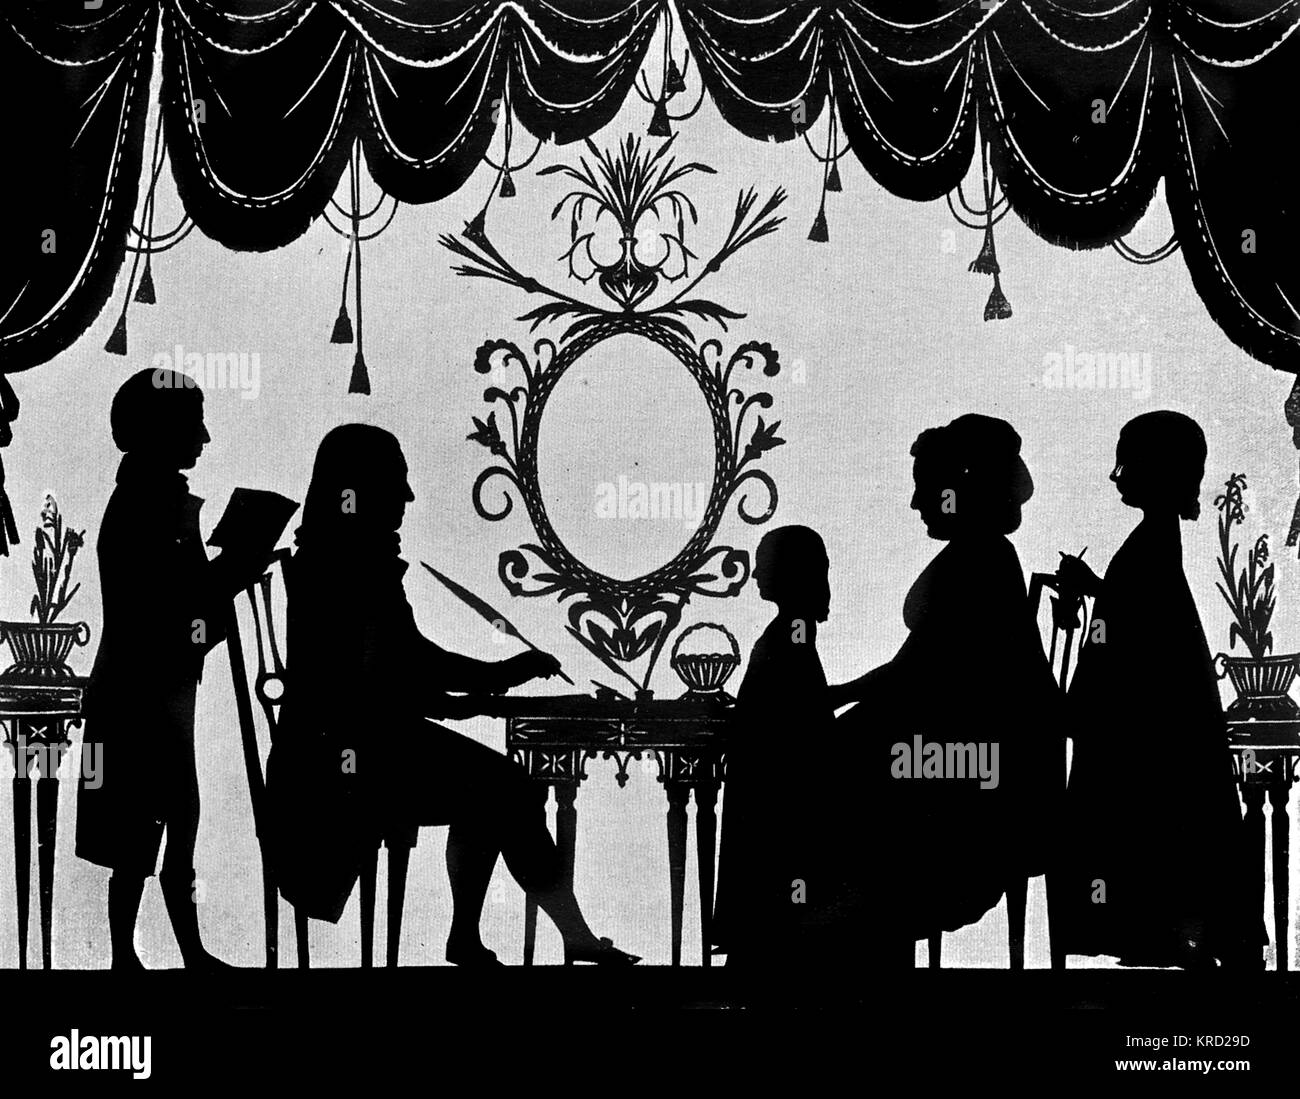 A silhouette portrait of the Burney family (possibly that of the musical historian, Charles Burney?), pictured in - Stock Image